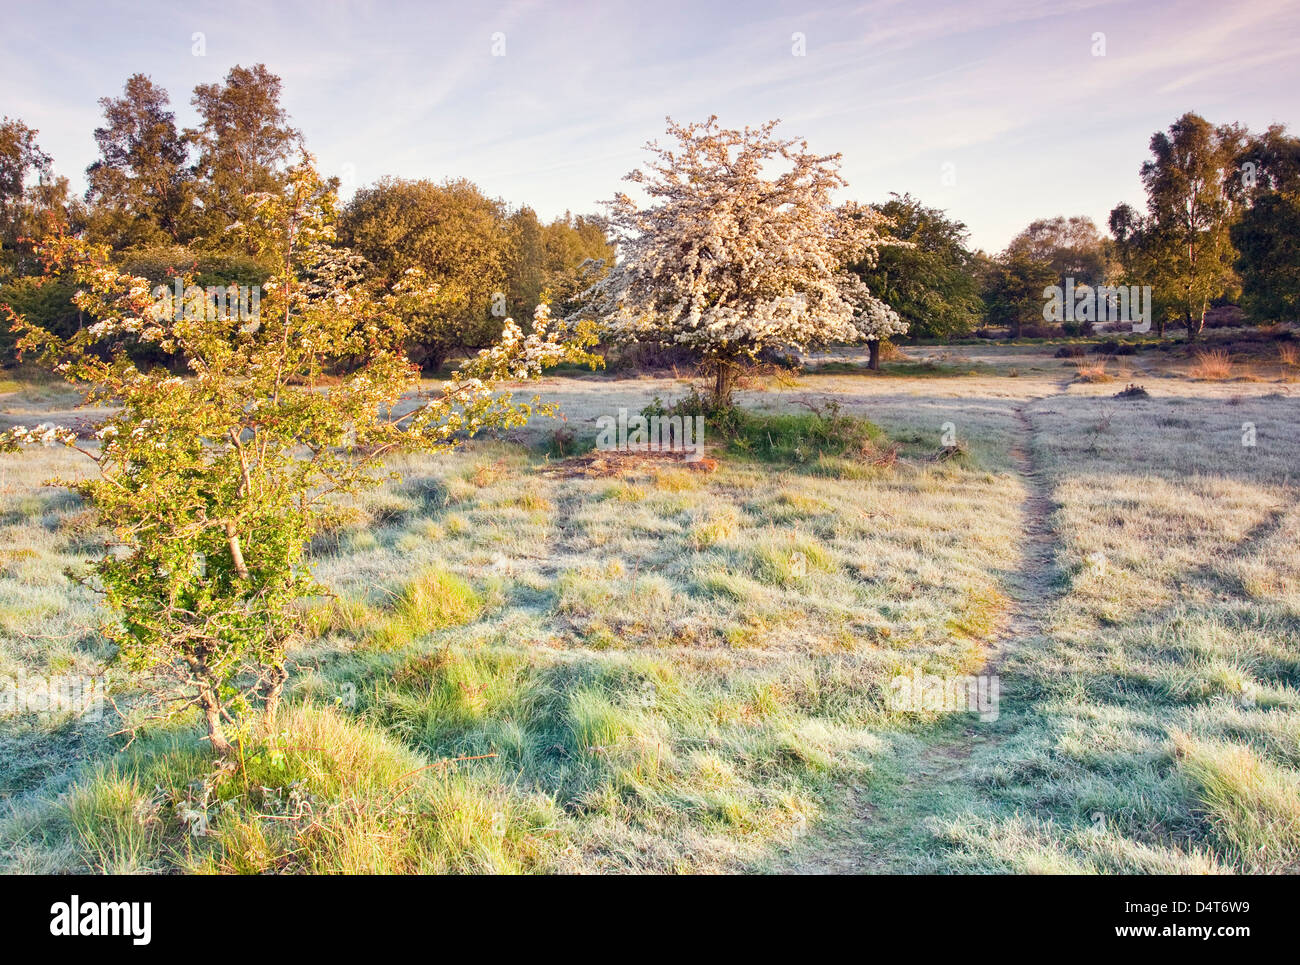 Late ground frost May blossom on Hawthorn trees Cannock Chase Country Park AONB (area of outstanding natural beauty) - Stock Image